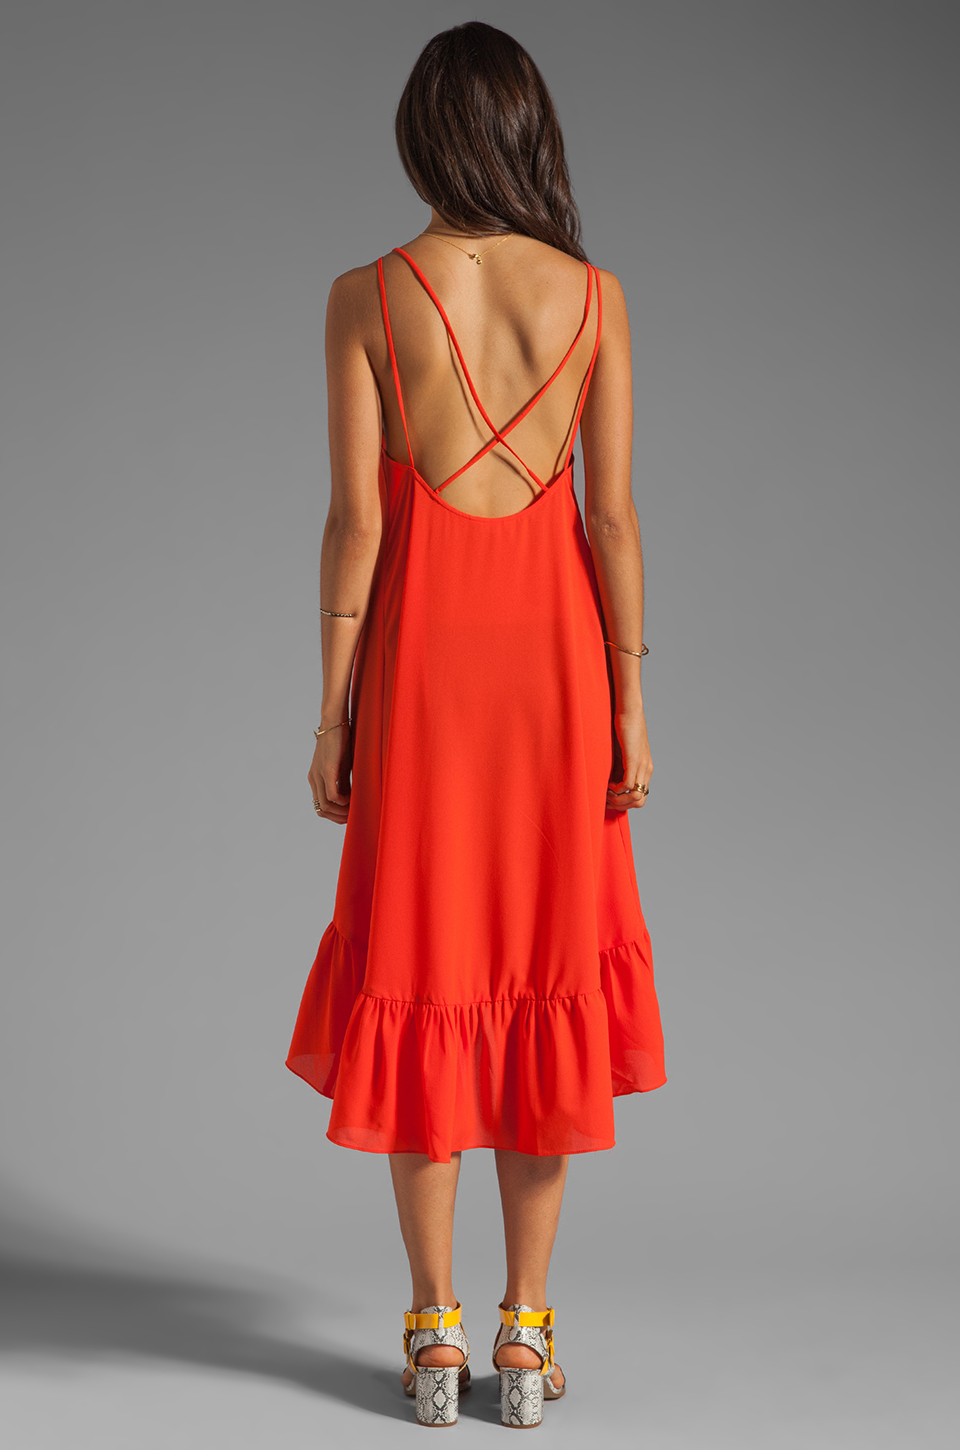 6 SHORE ROAD Bungalow Backless Dress in Sunset